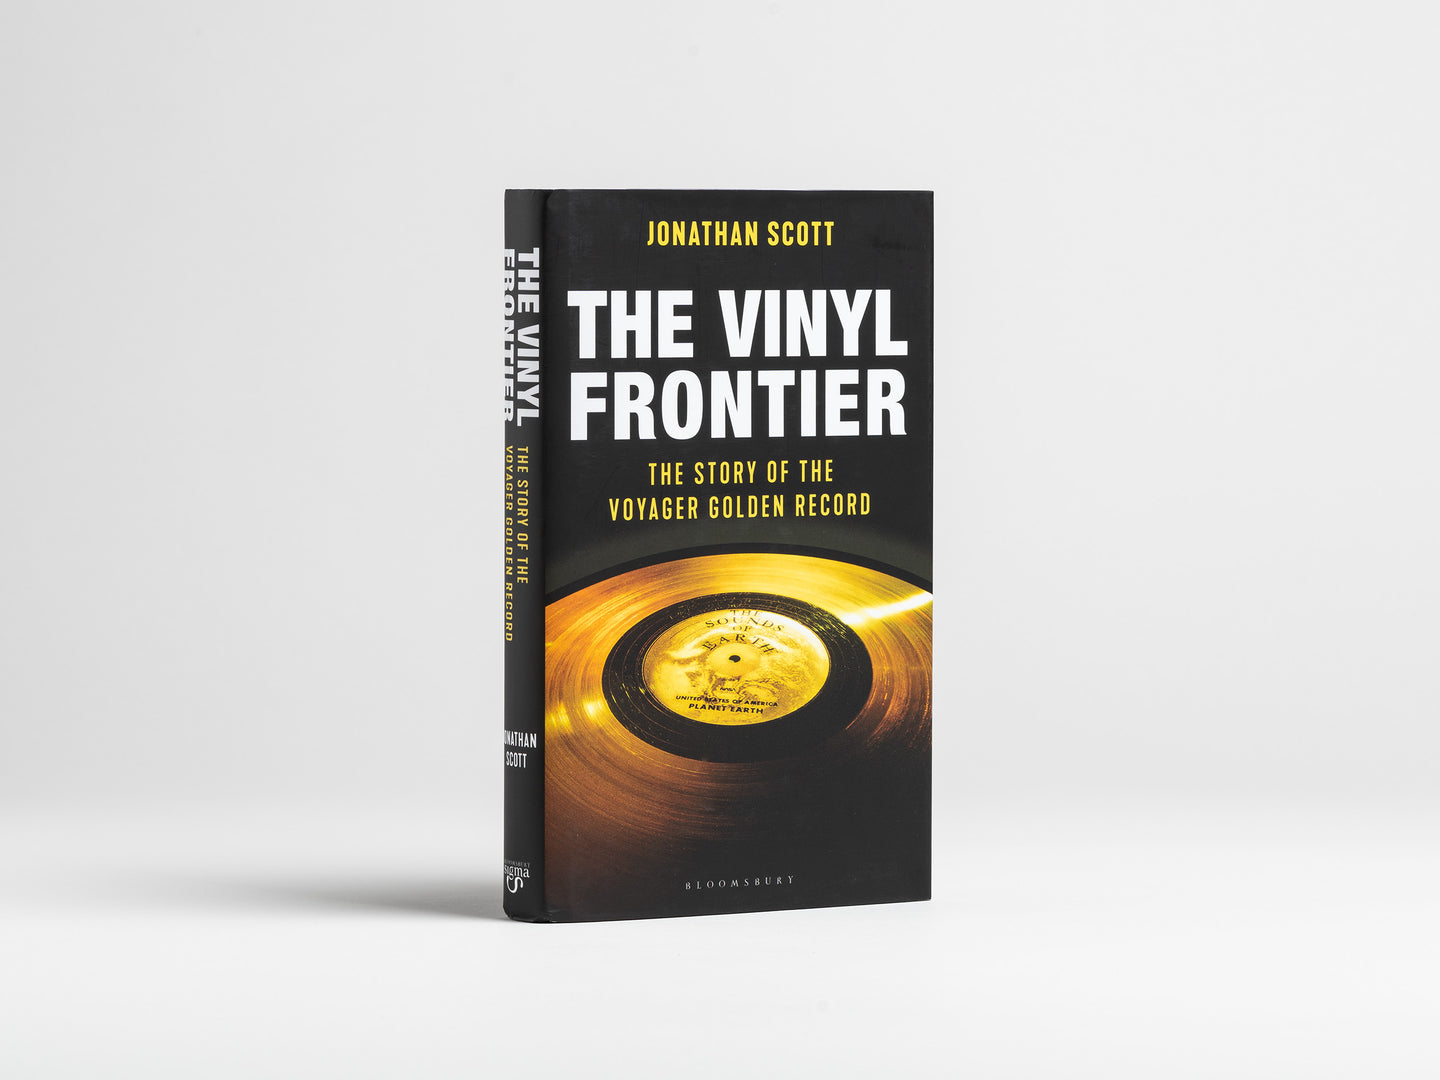 The Vinyl Frontier - Jonathan Scott